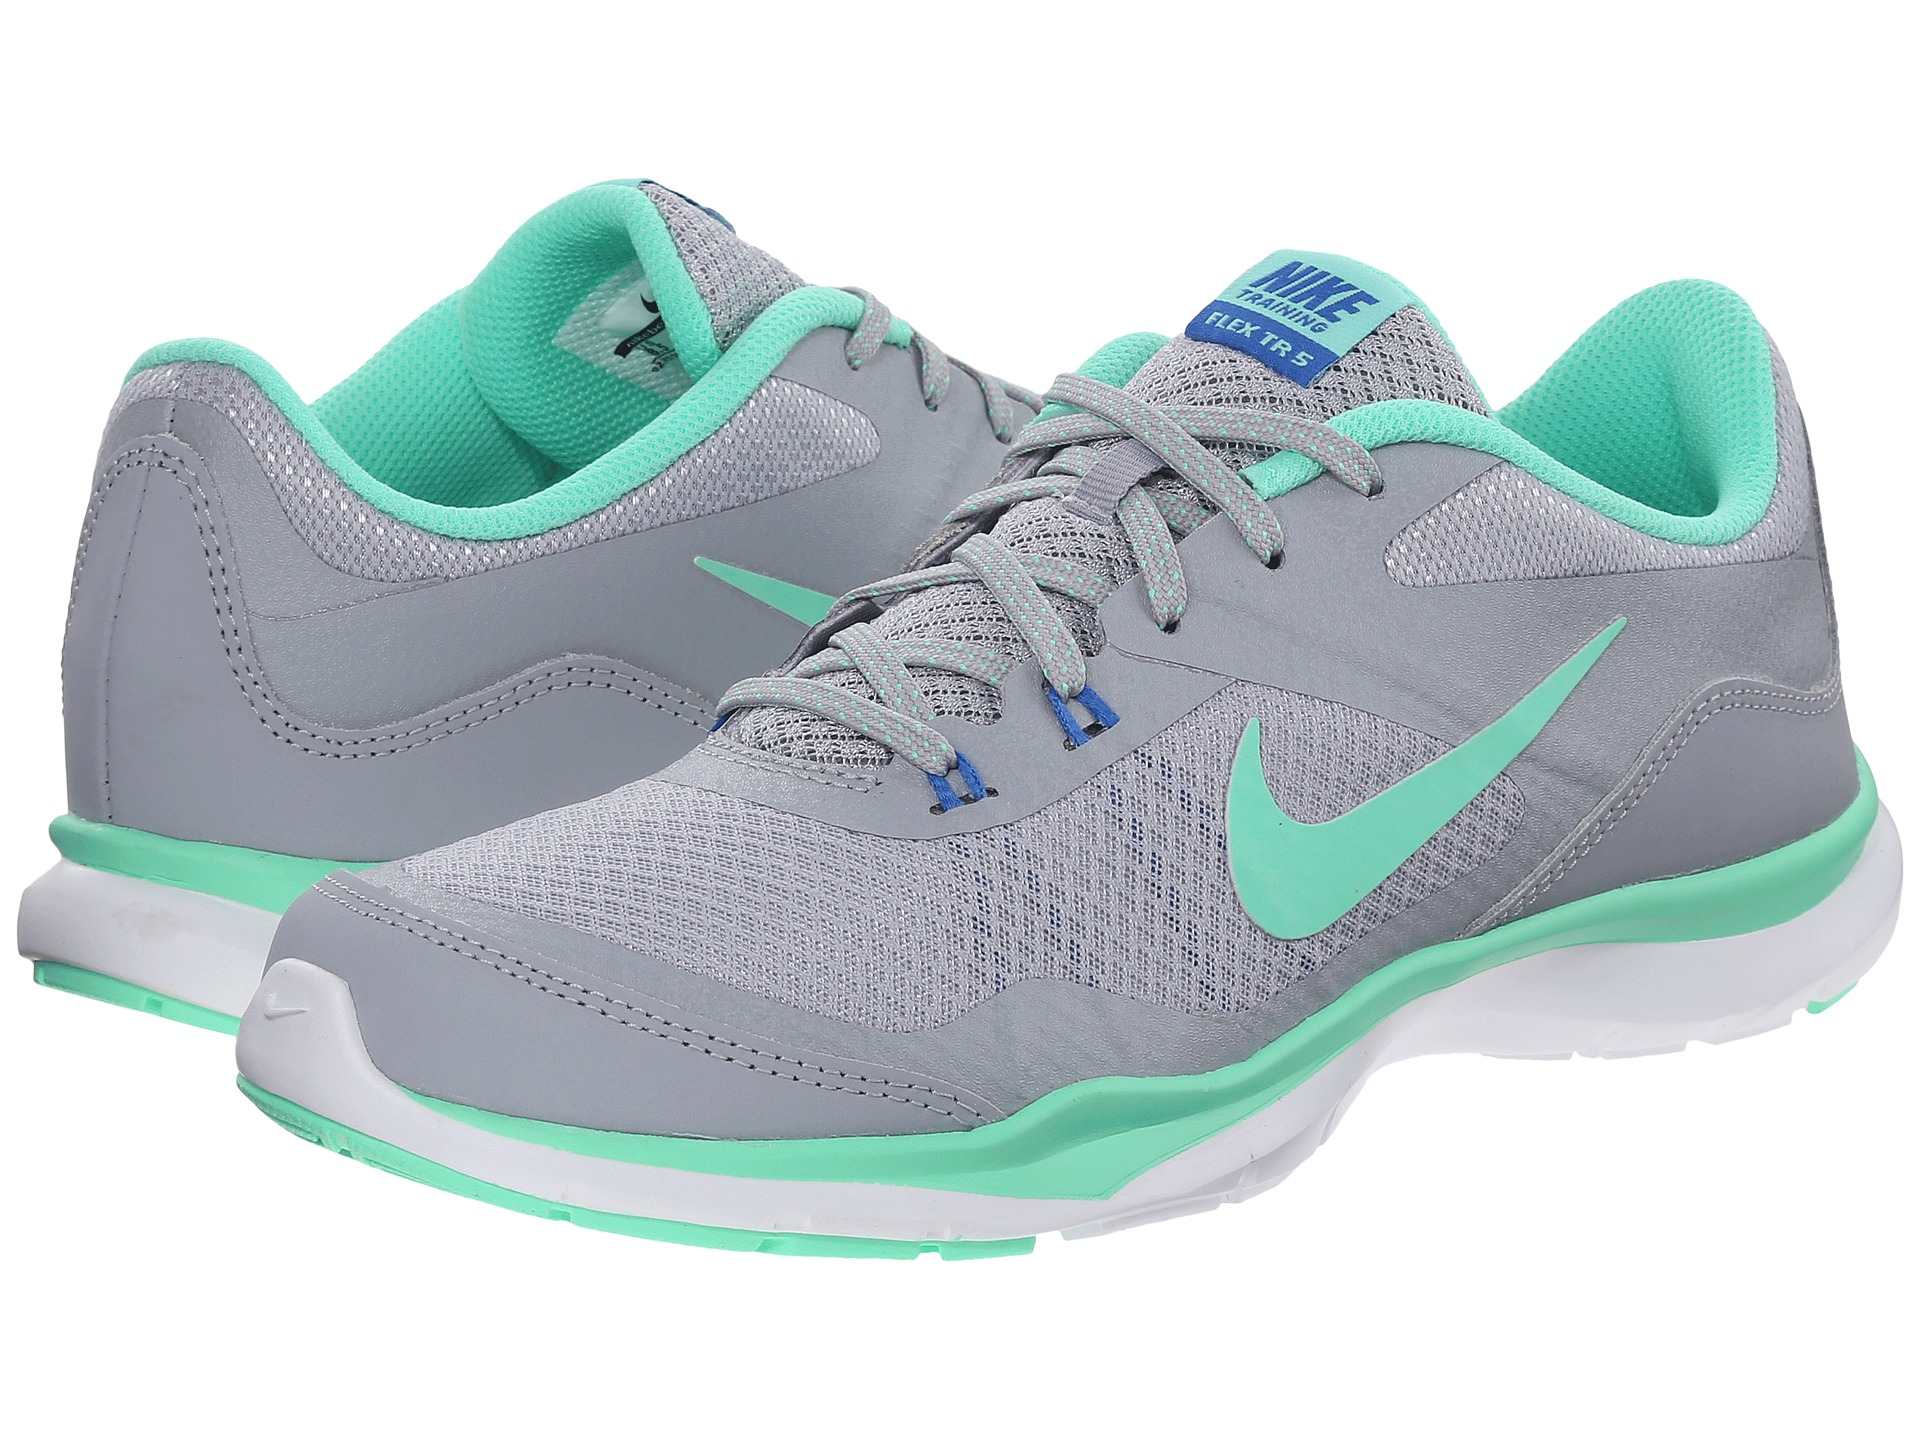 a7c3d0141ee4 Nike Flex Trainer 5 in Gray (Wolf Grey Green Glow Pure Platin)